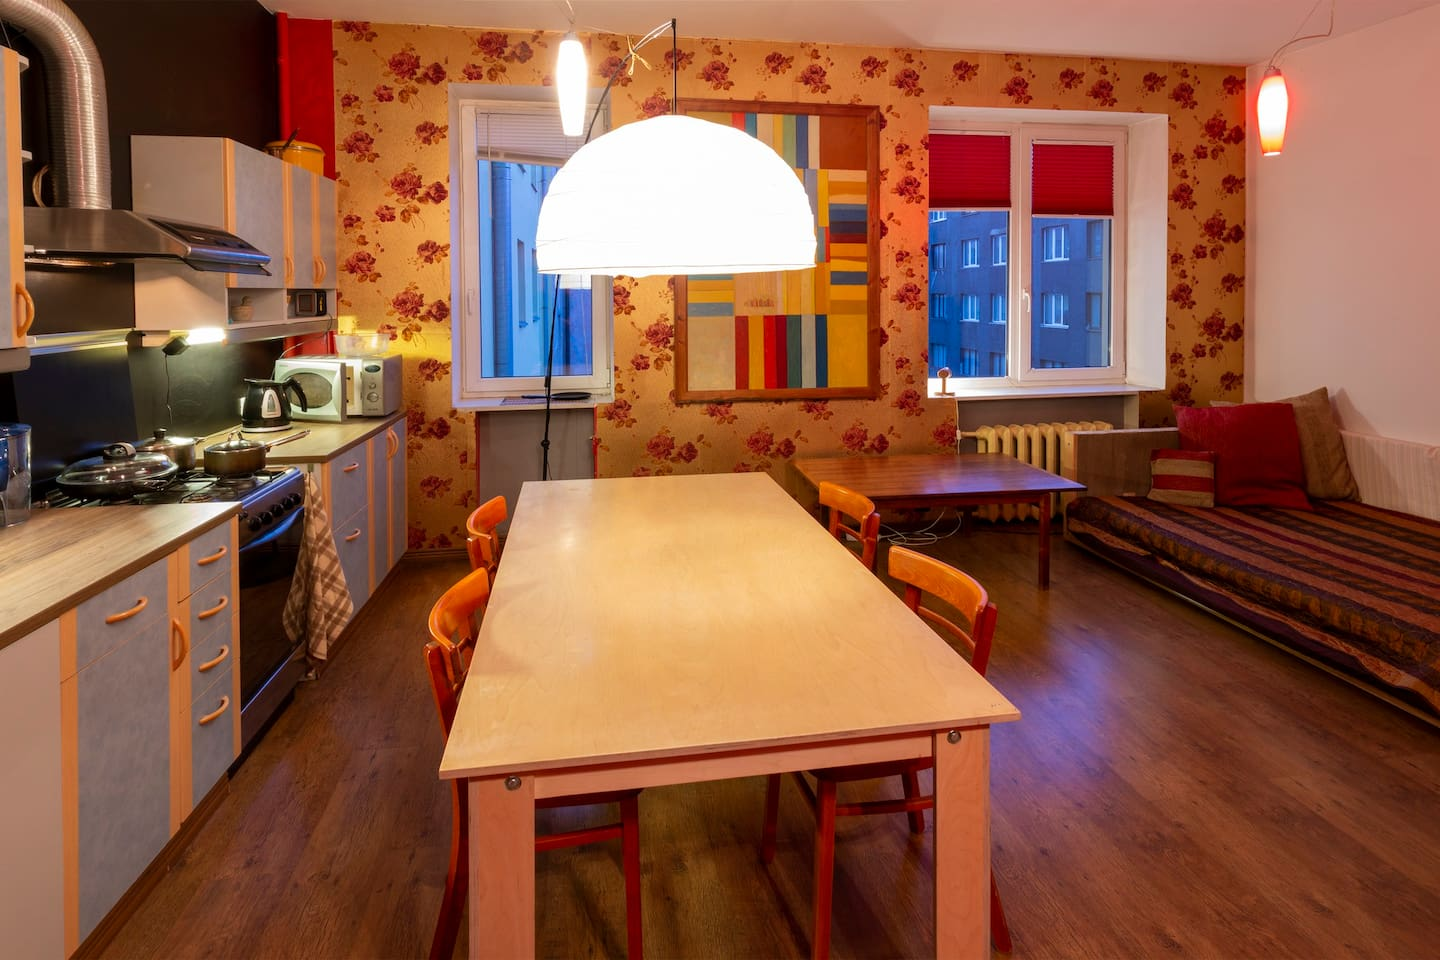 Colorful and spacious first room could alone be quite impressive studio apartment